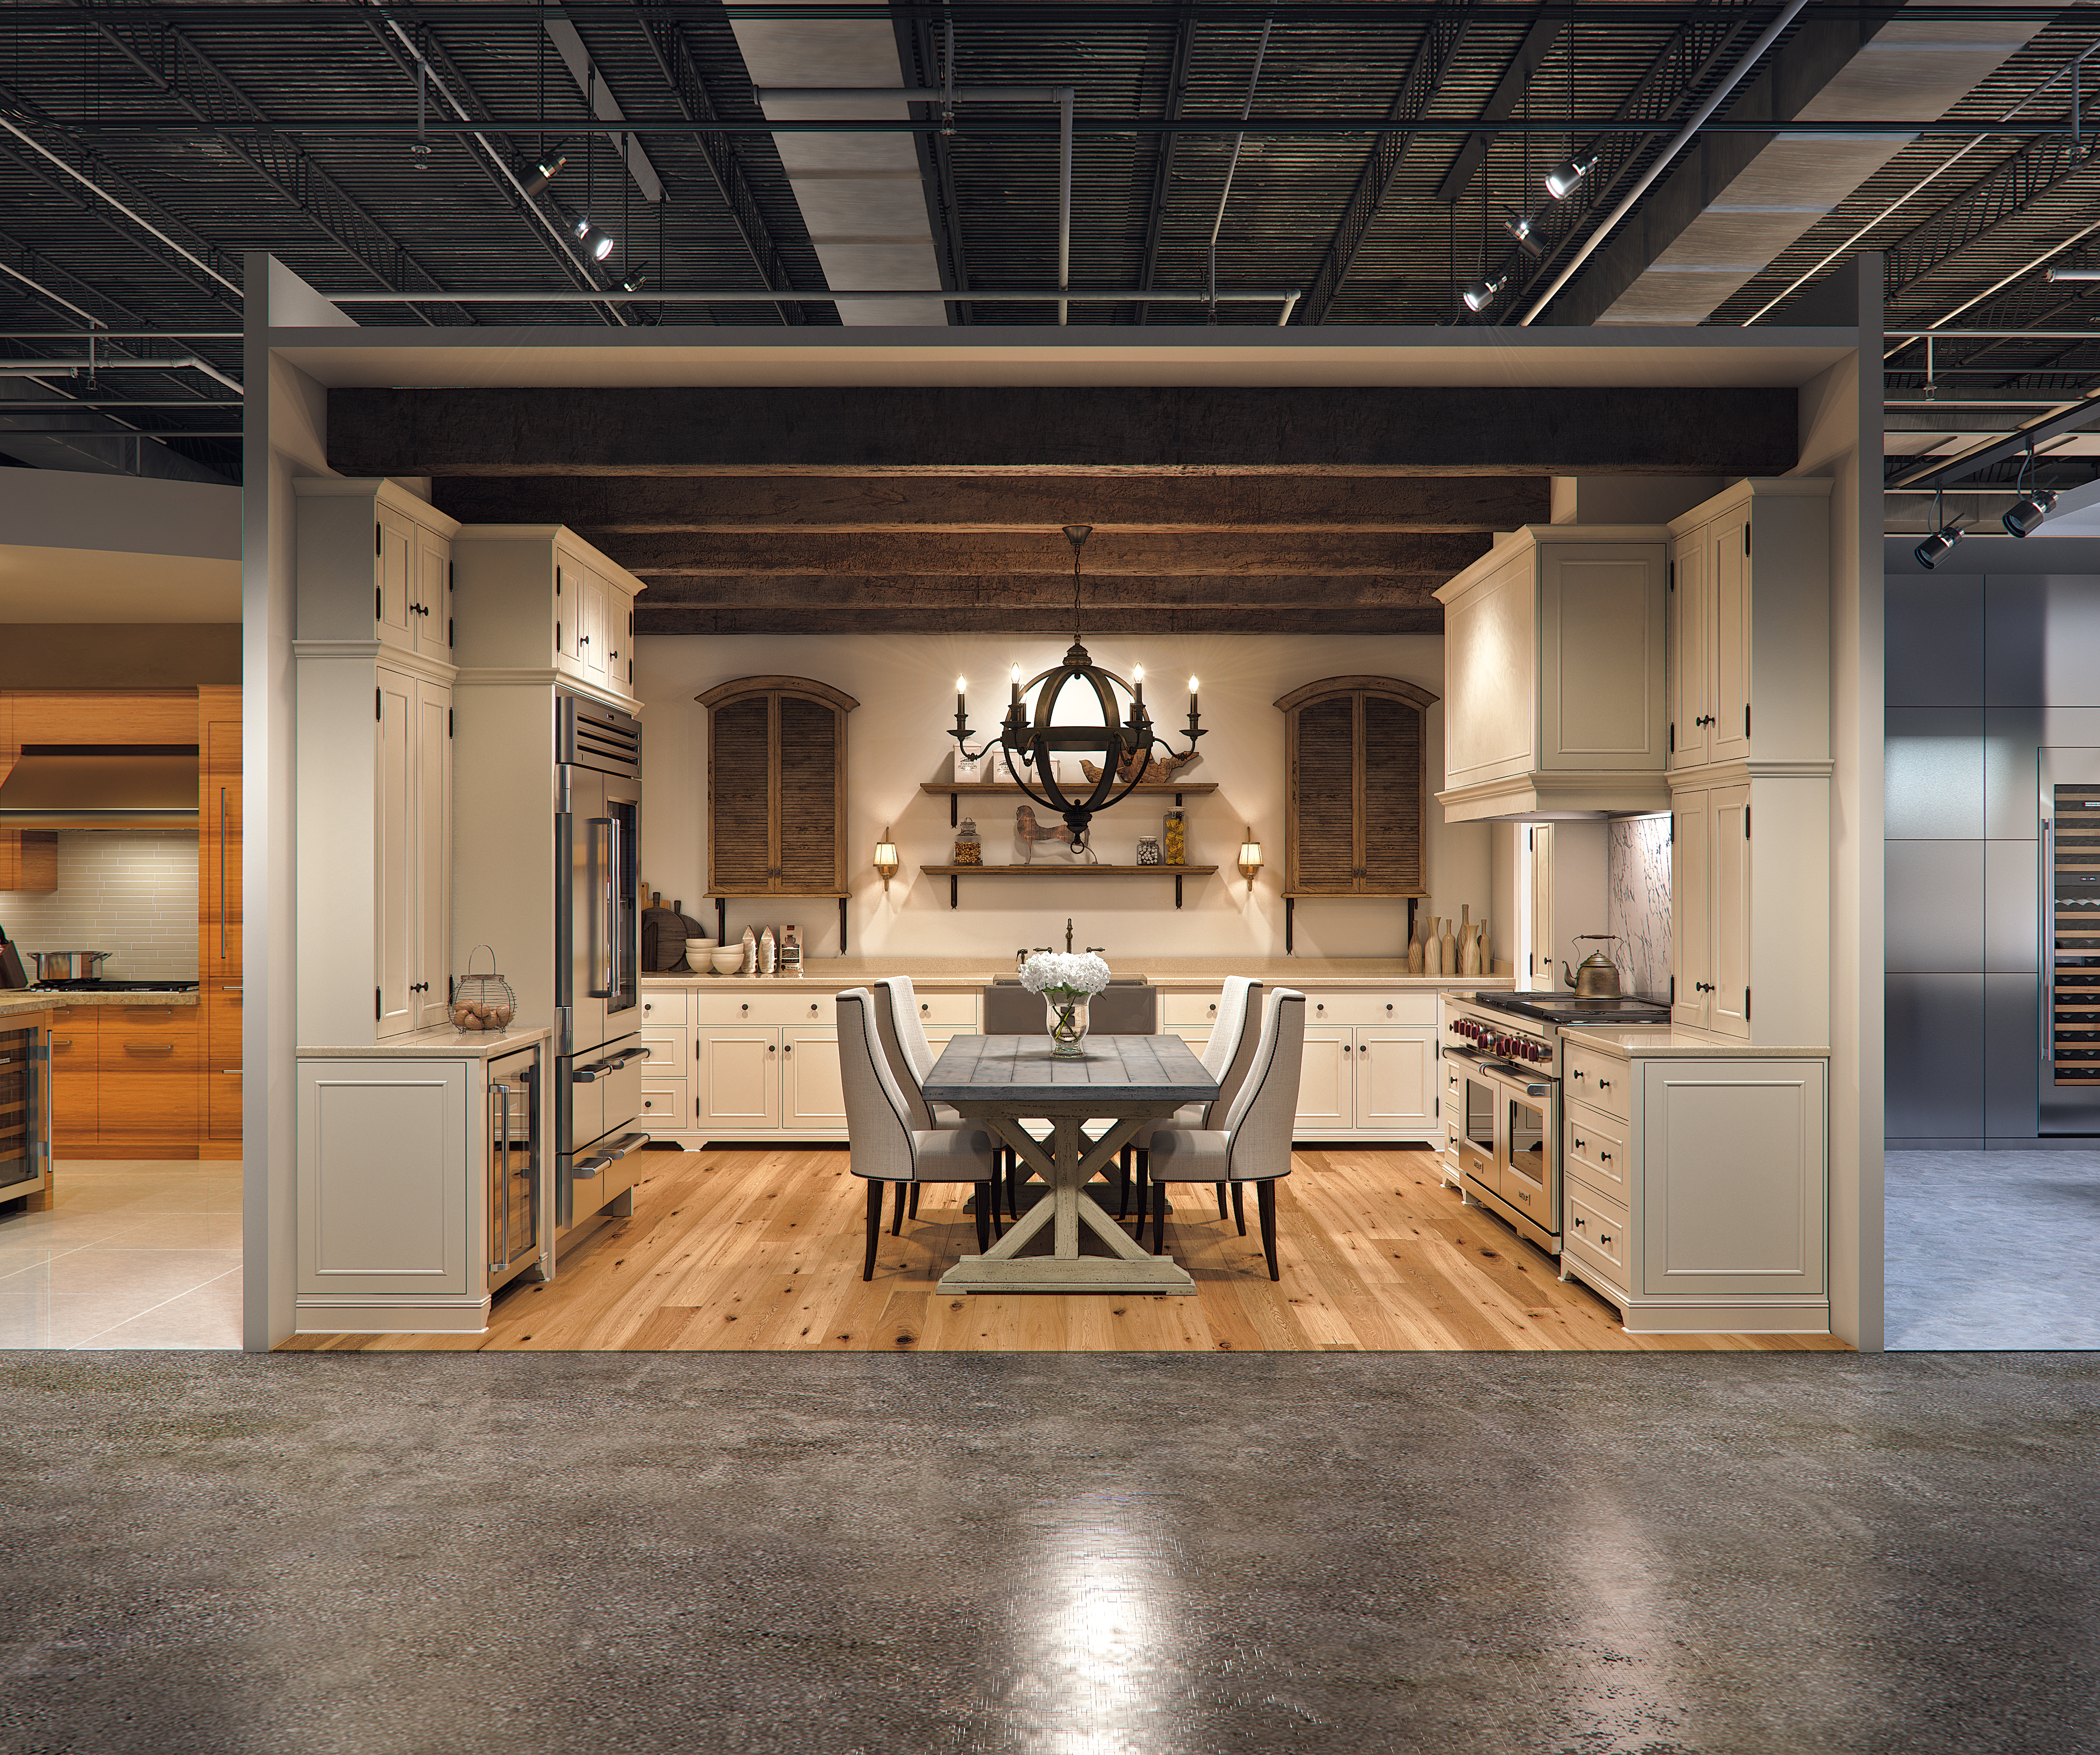 Kitchen Design Showrooms: Sub-Zero And Wolf Hands-on Showrooms